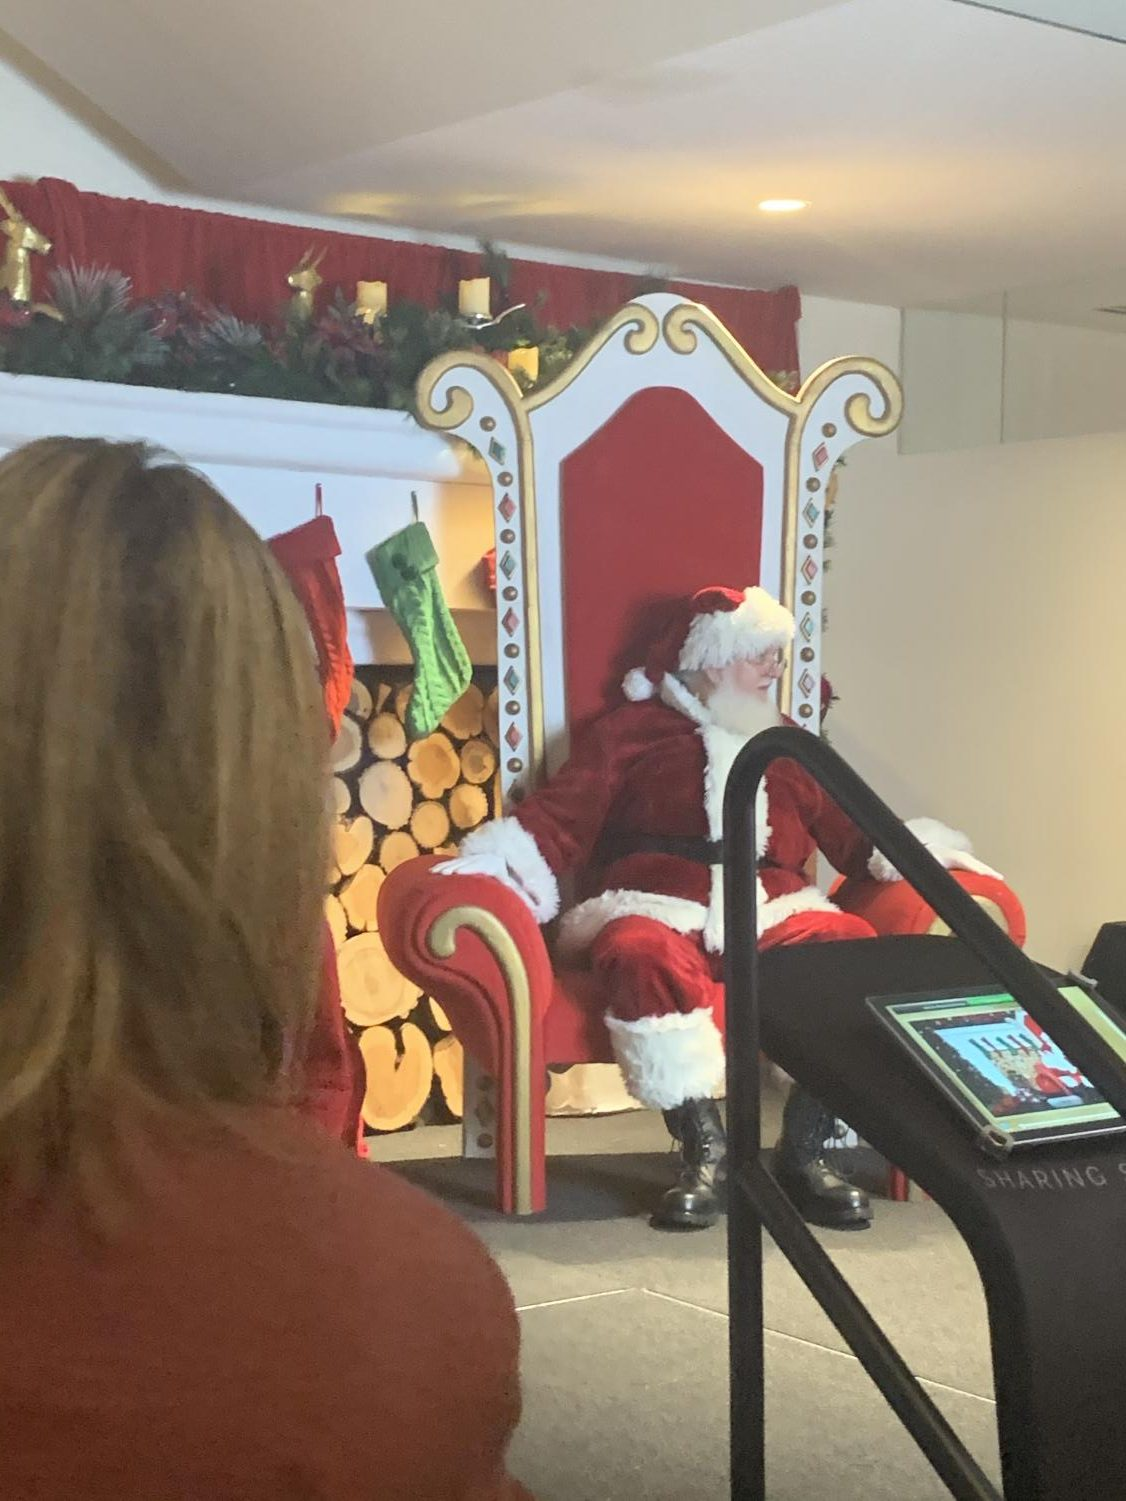 One+of+the+most+looked+forward+to+things+on+the+agenda+was+getting+a+picture+with+Santa.++The+line+wrapped+around+the+whole+floor%2C+filled+with+mostly+eager+little+kids.